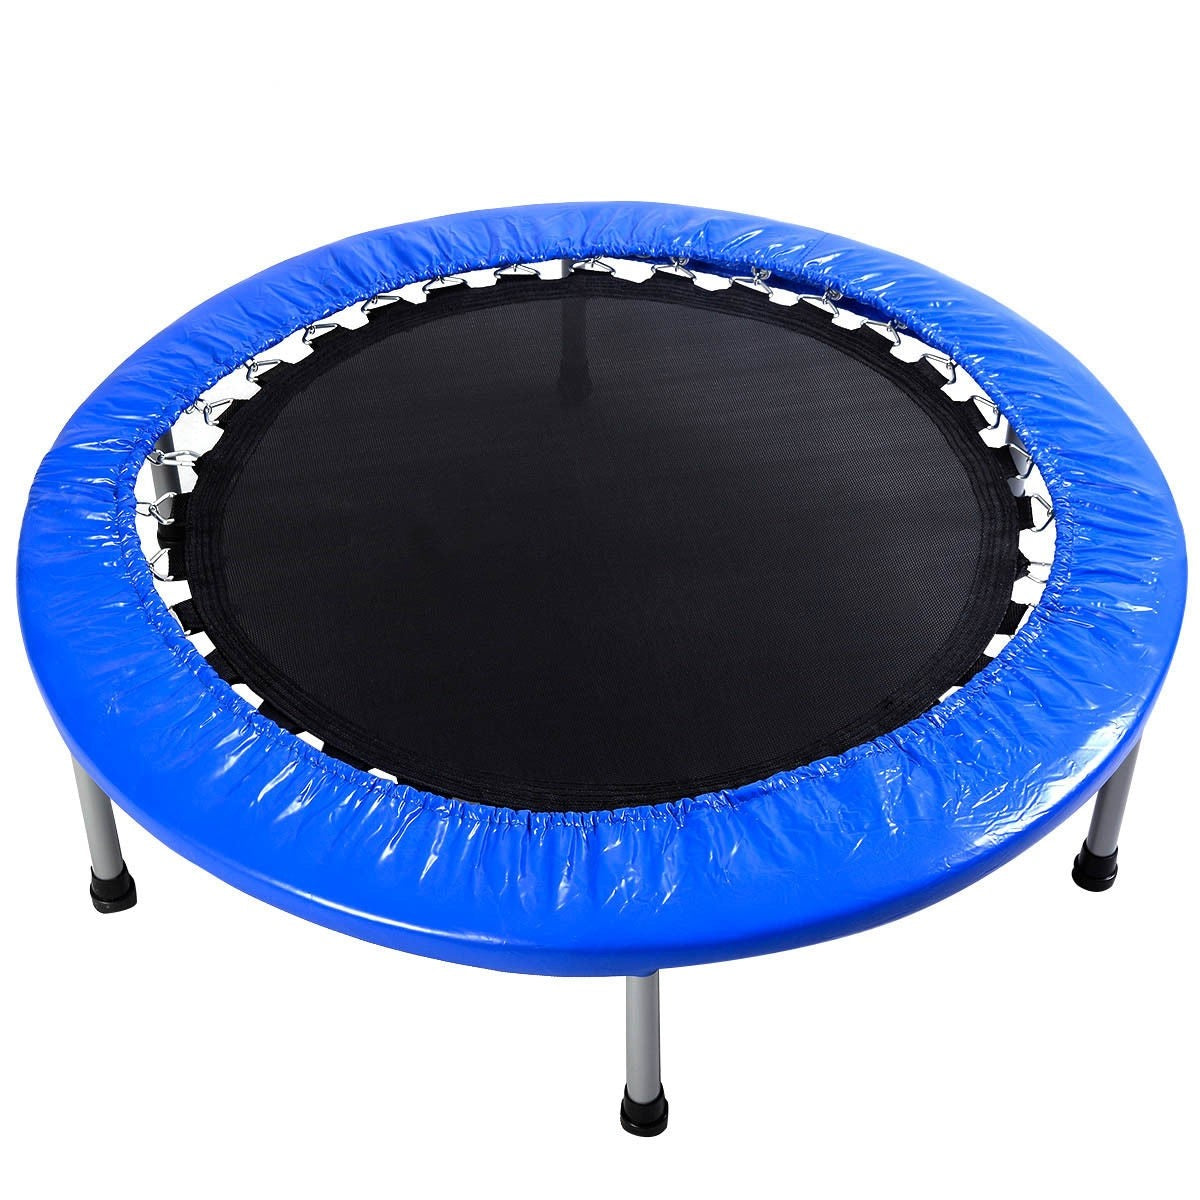 Uplift Active Exercise Trampoline with Padding and Springs - 38""